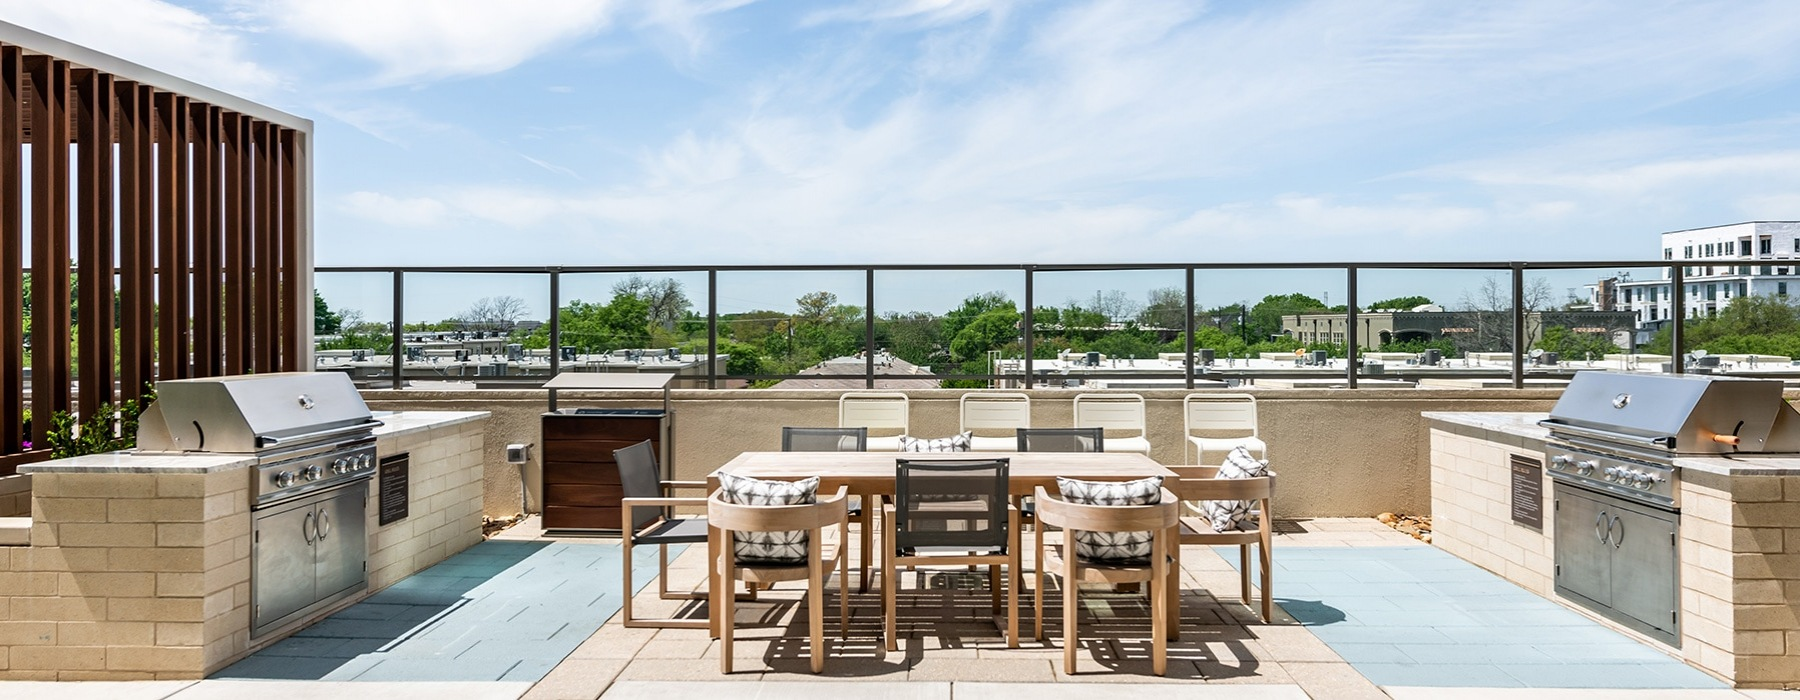 rooftop lounge area with tables, chairs and grill stations